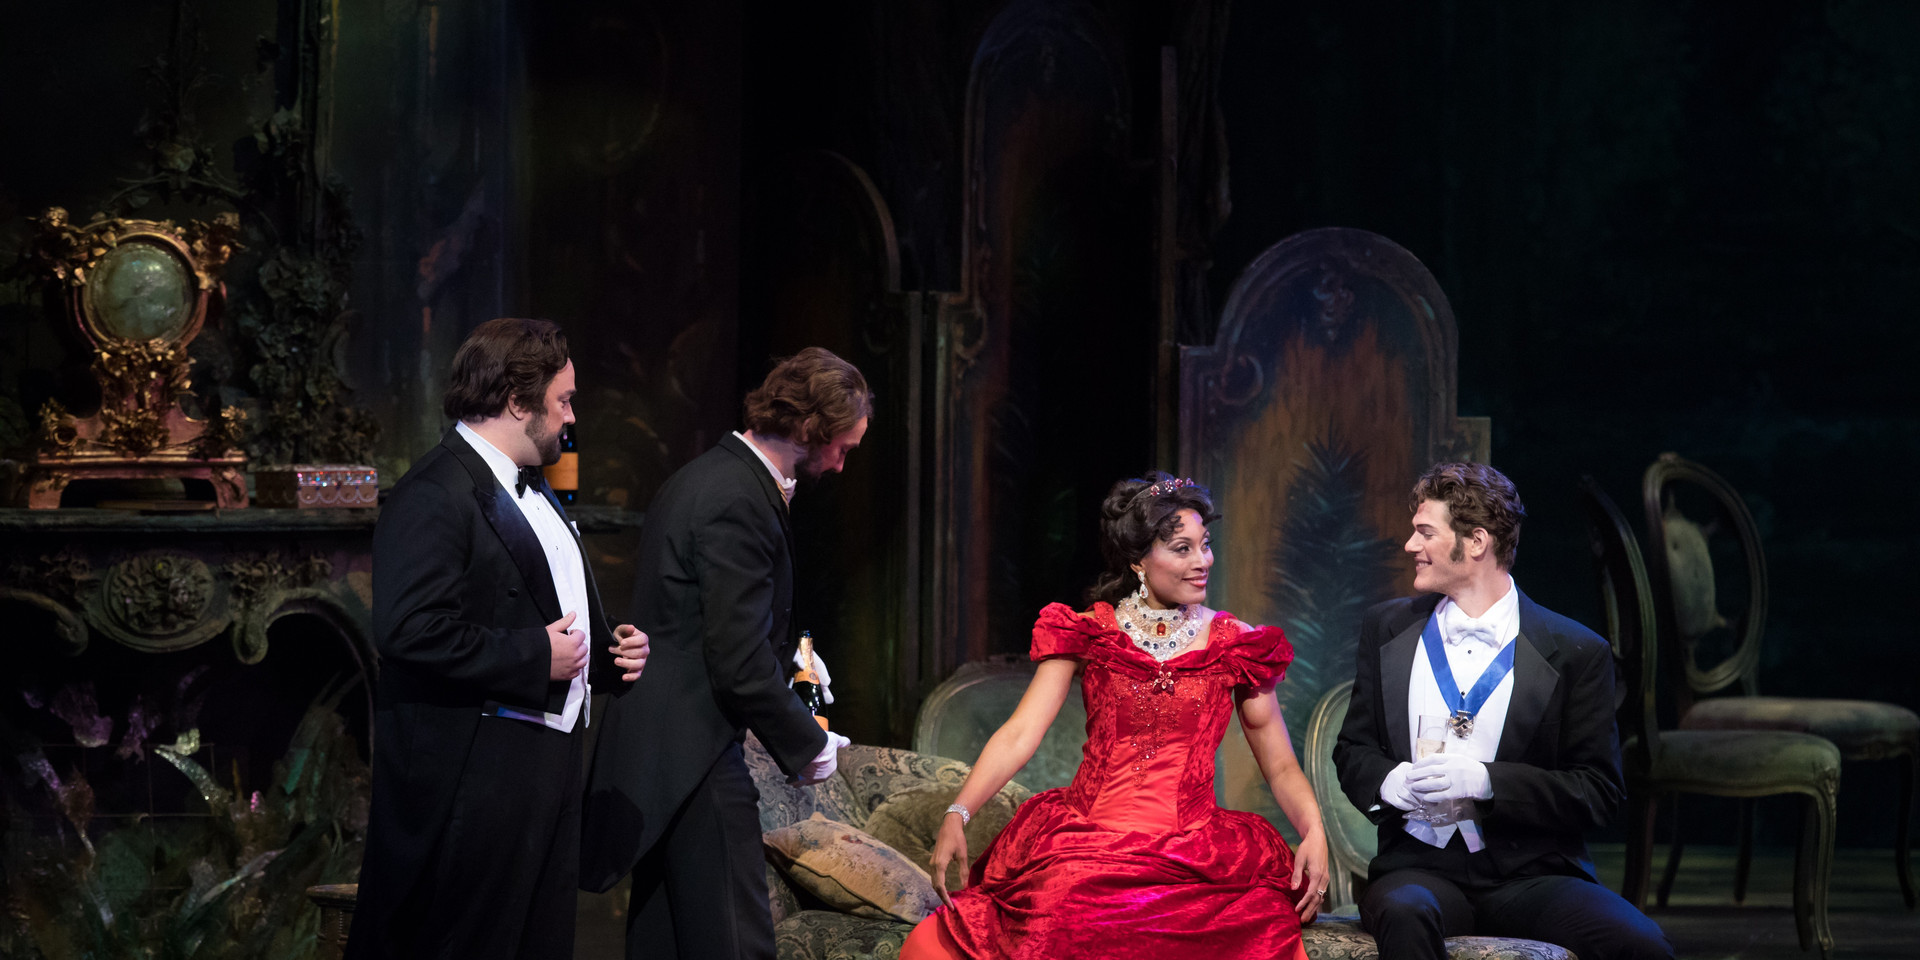 Photo by Bruce R. Bennett, for Palm Beach Opera